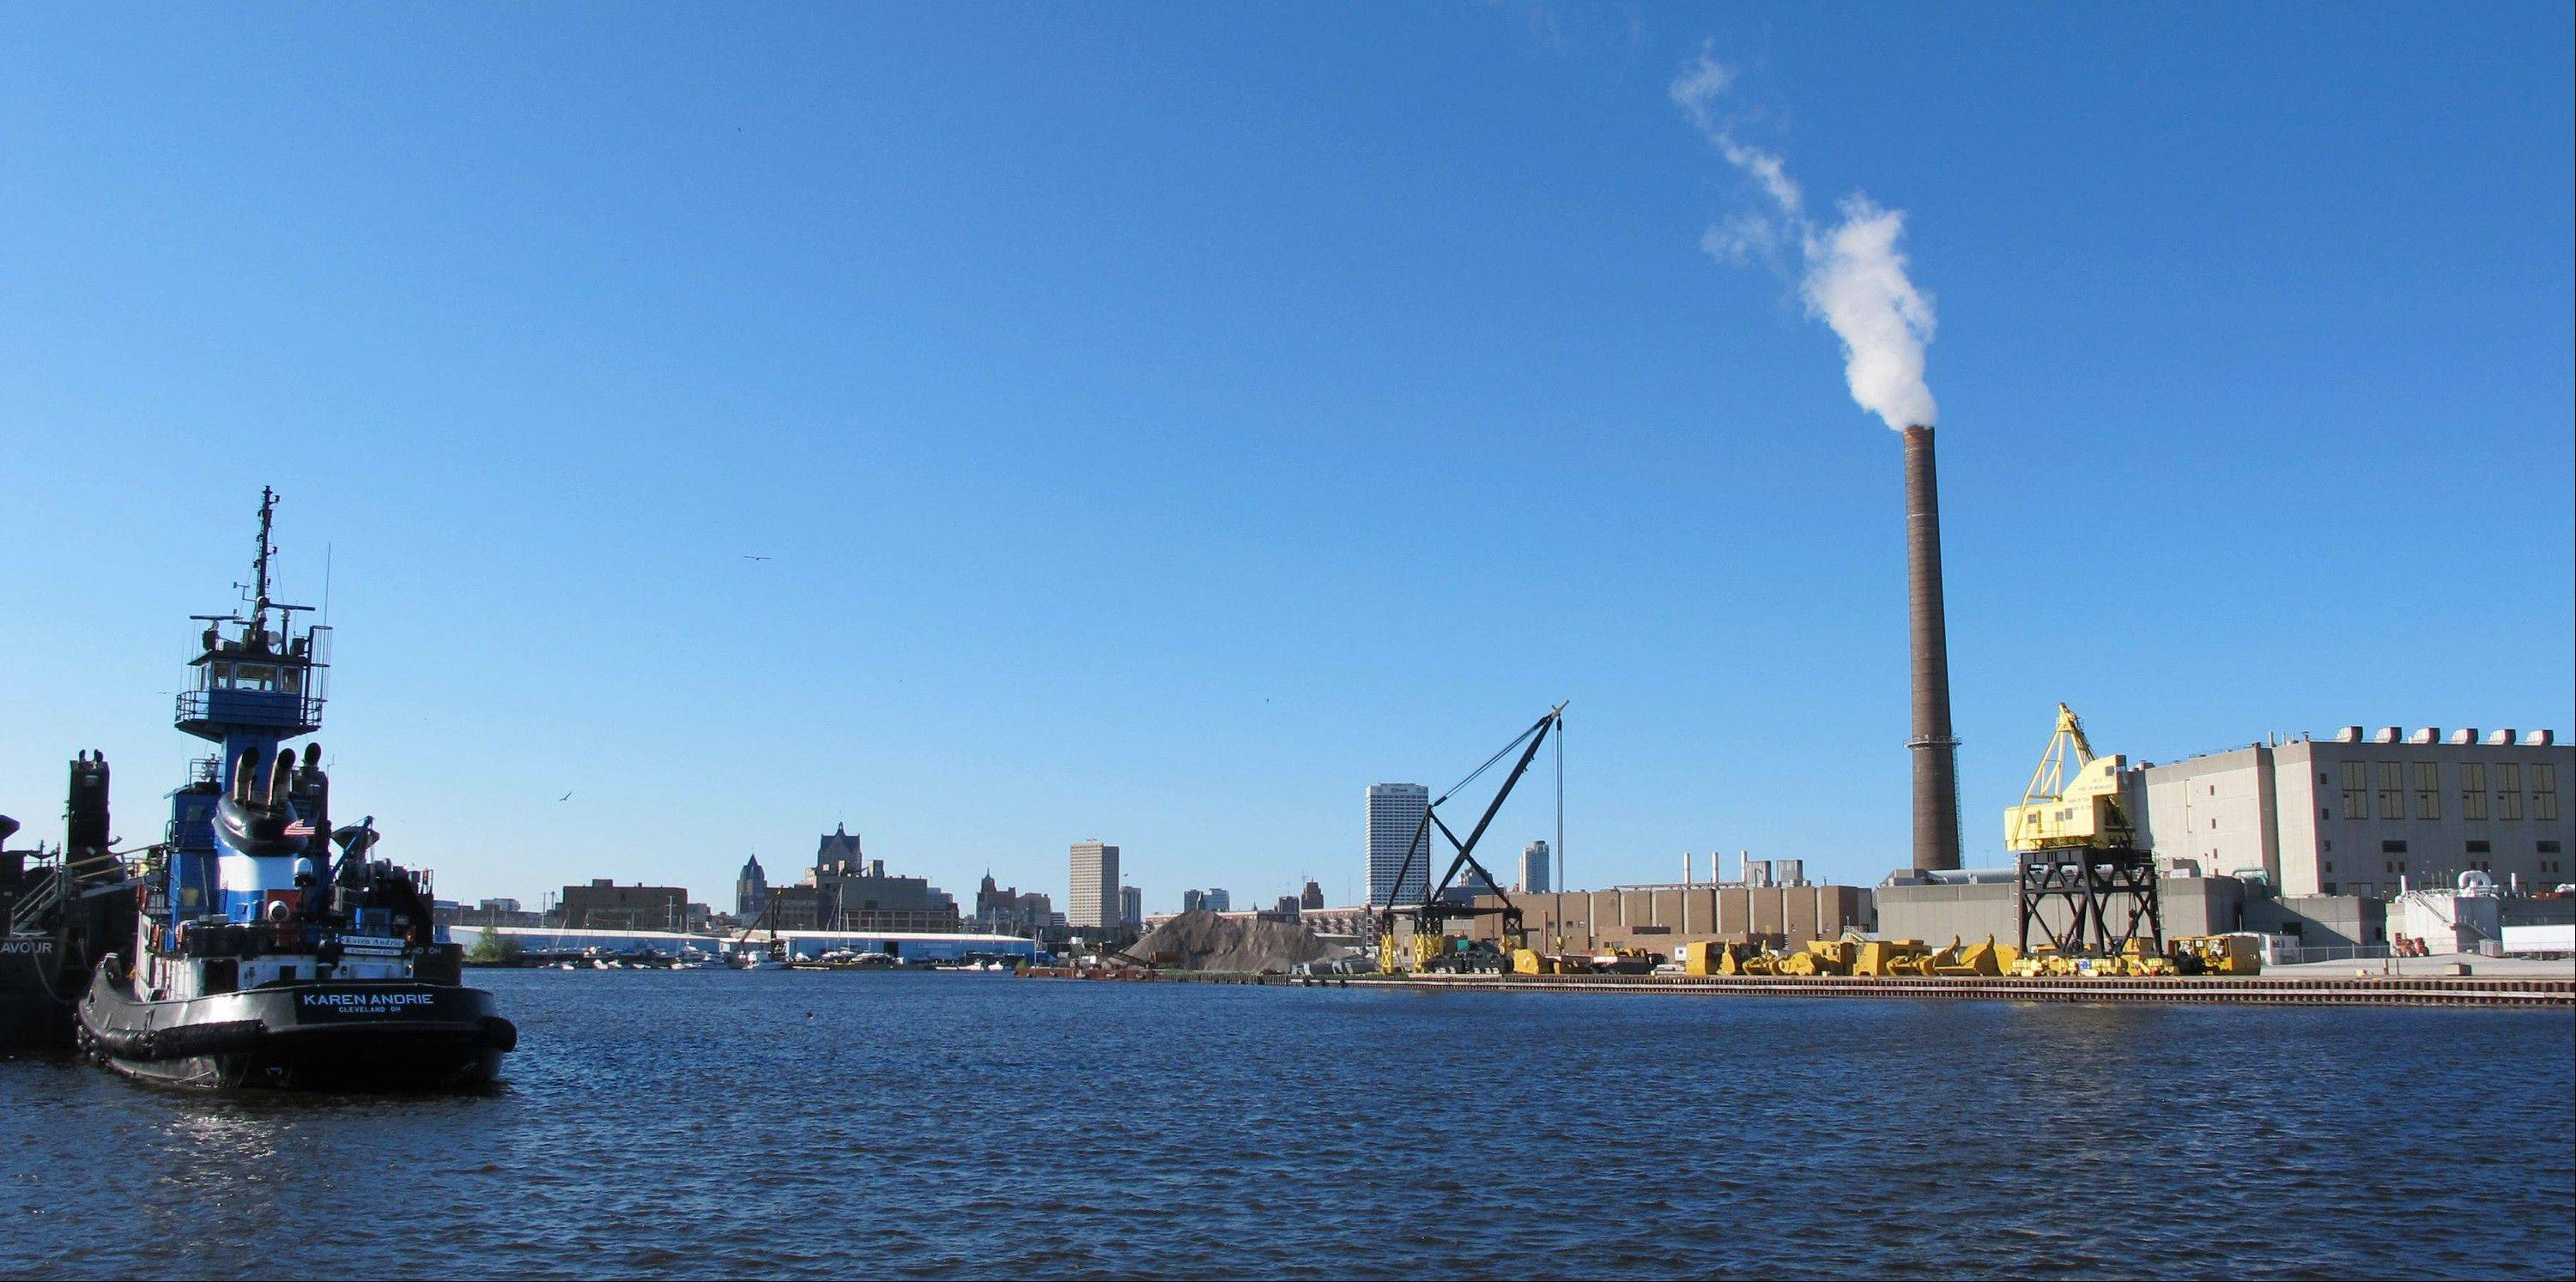 This May 23, 2013, photo shows a view of downtown Milwaukee from the Kinnickinnic River, not far from where it connects with Lake Michigan. Milwaukee officials hope its proximity to water provides the backbone to a revitalized economy.